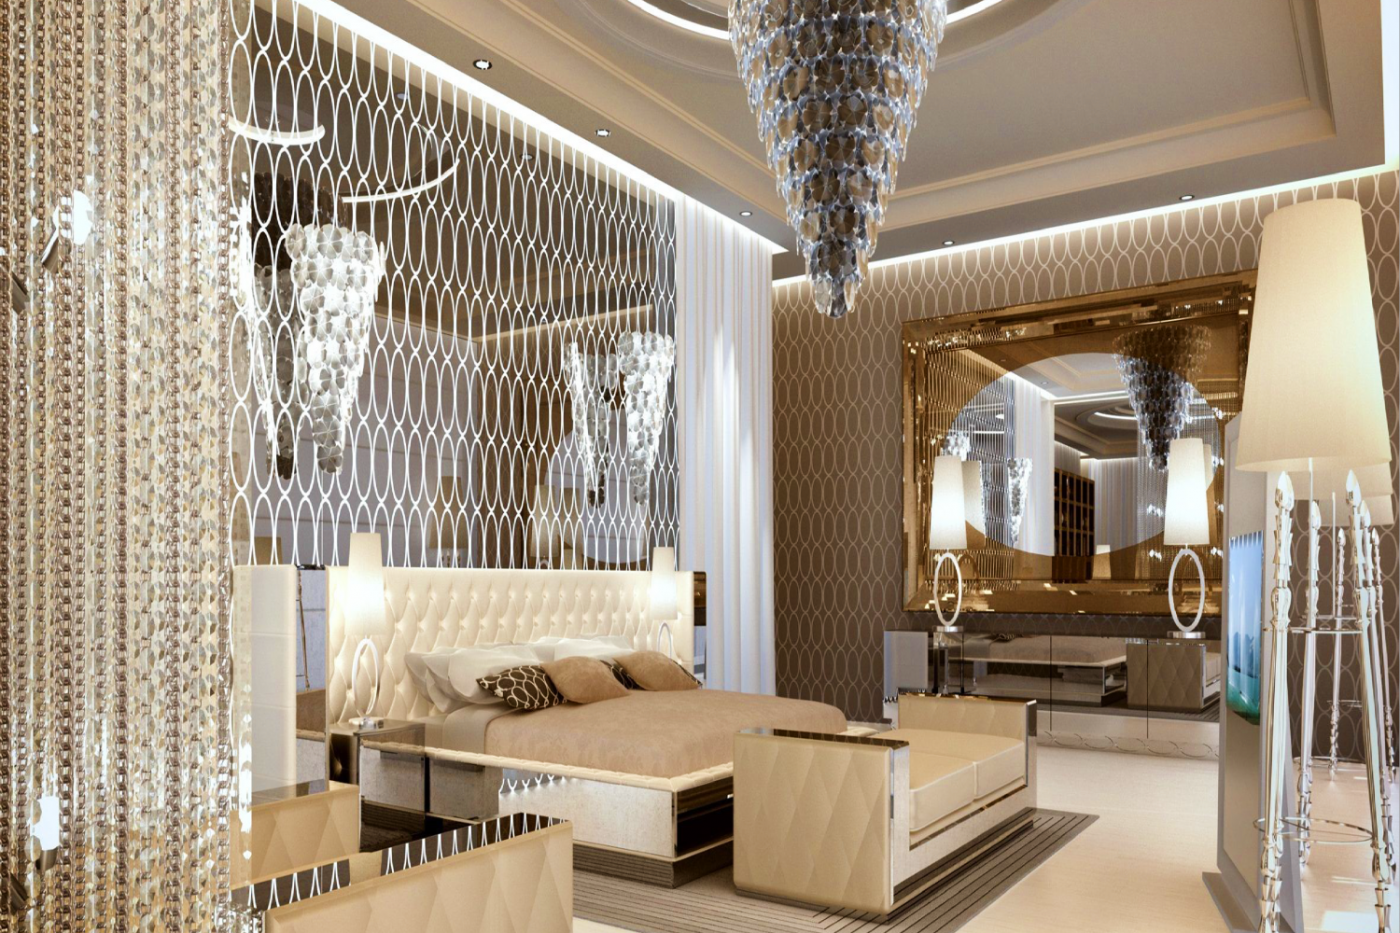 luxury showrooms Where To Shop – The Best Luxury Showrooms In Casablanca Where To Shop The Best Luxury Showrooms In Casablanca feature 1400x933